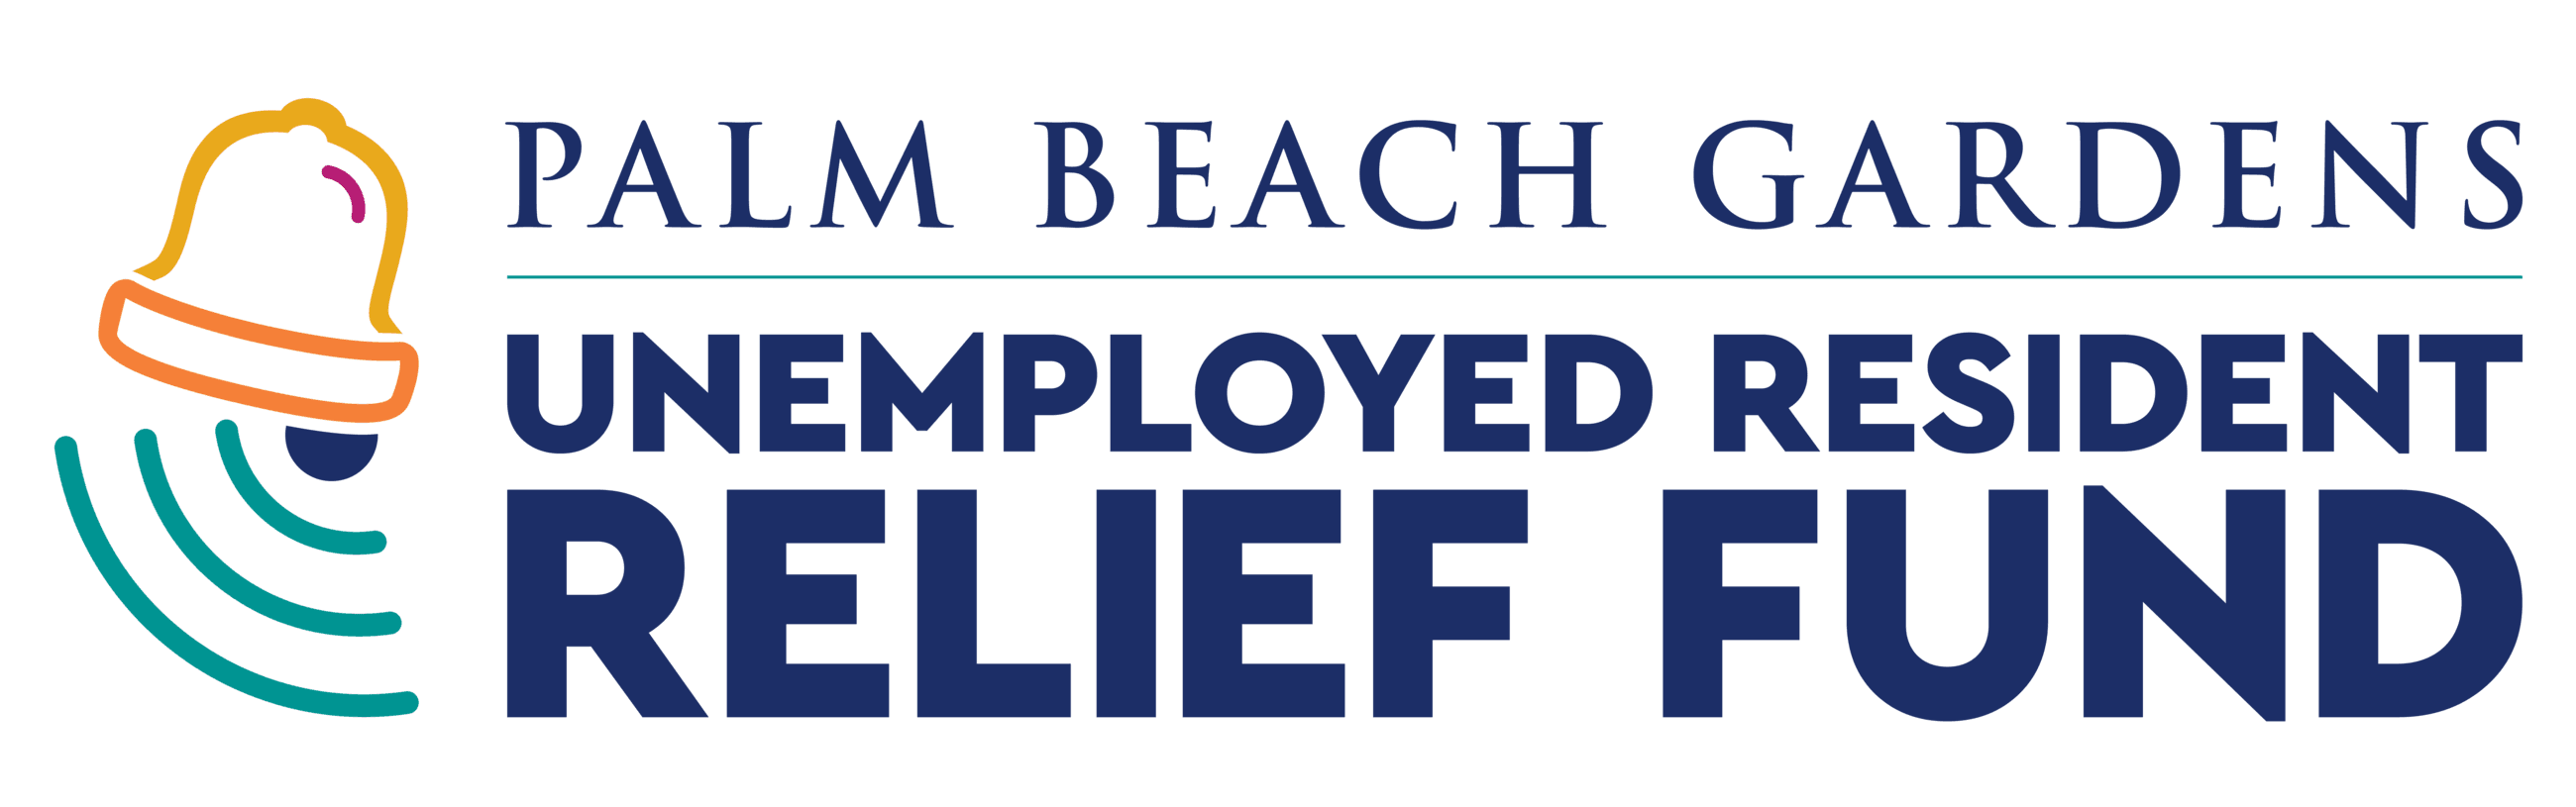 Unemployed Resident Relief Fund